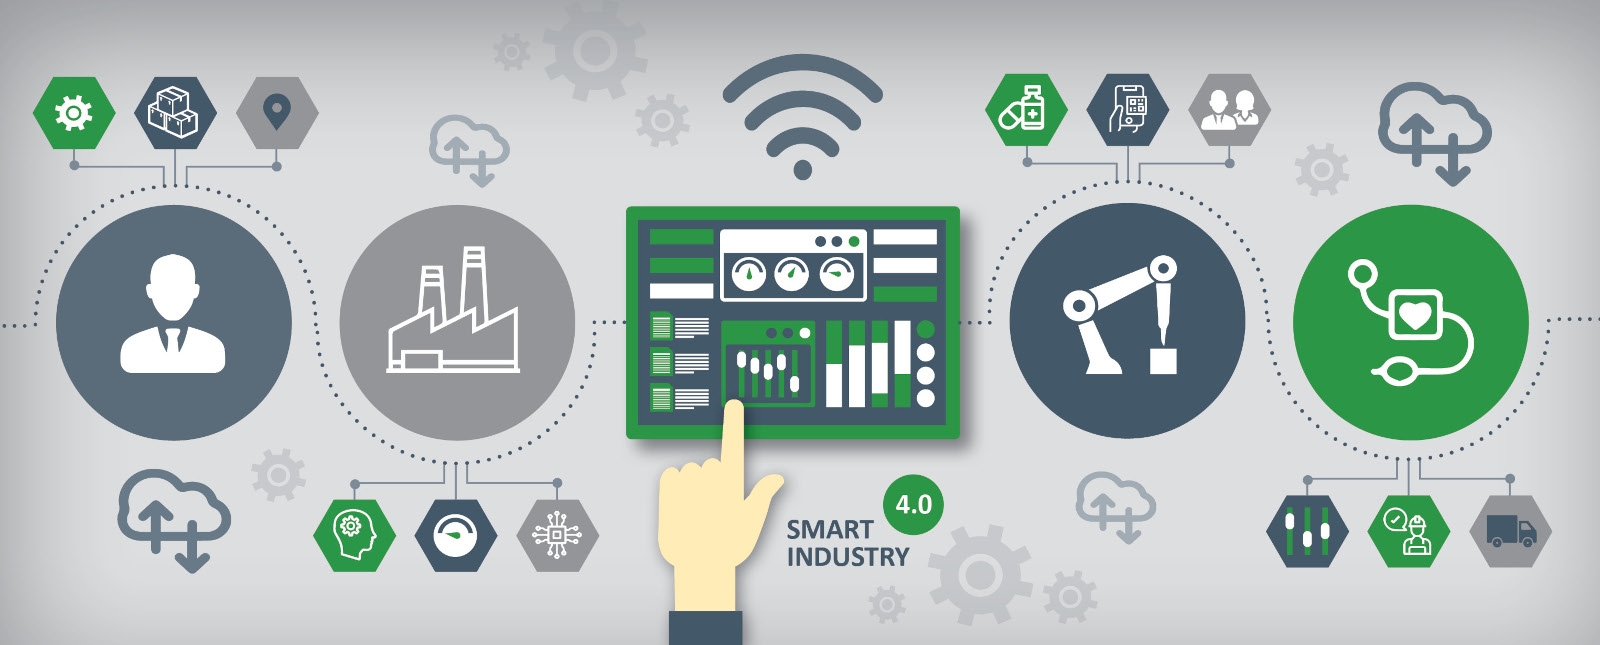 Smart Manufacturing Consultancy infographic